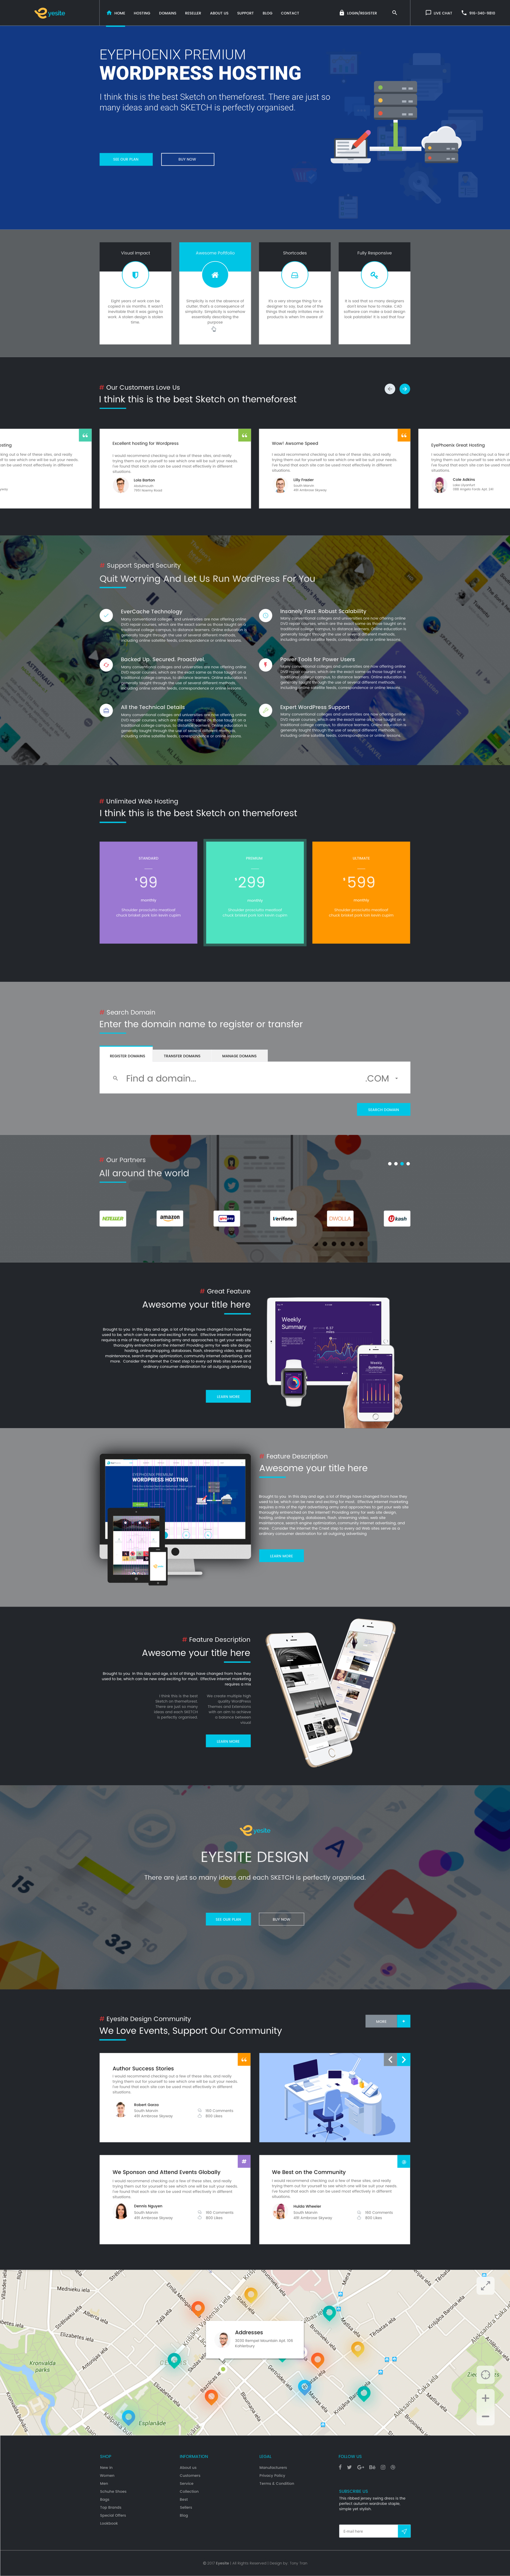 Stunning Hosting Templates Pictures Inspiration - Professional ...